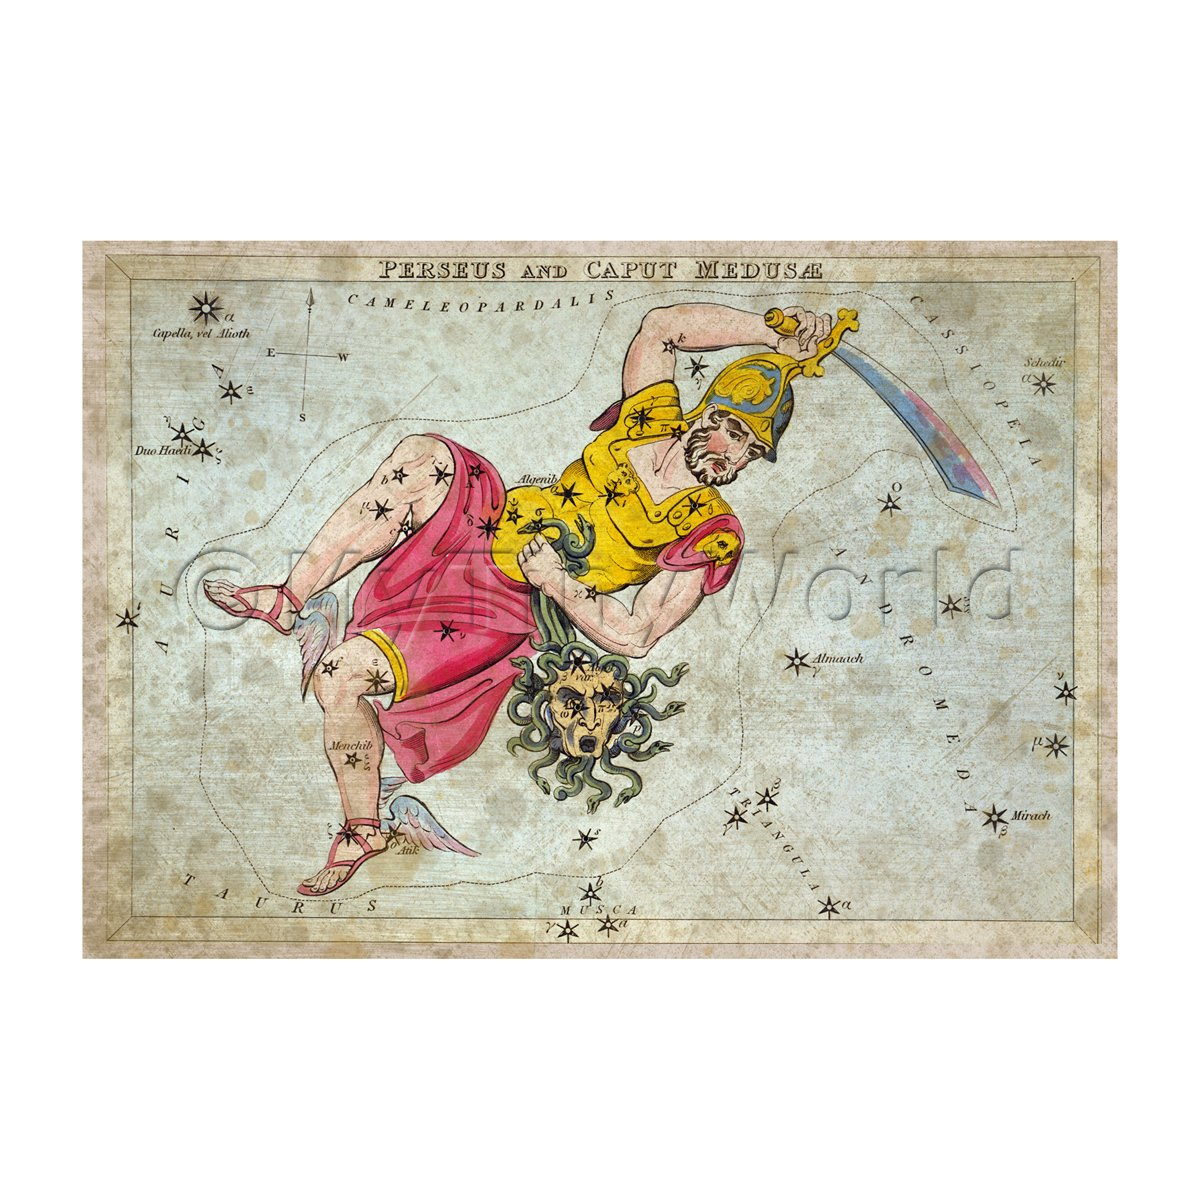 Dolls House Miniature Aged 1820s Star Map Depicting Perseus, Medusae